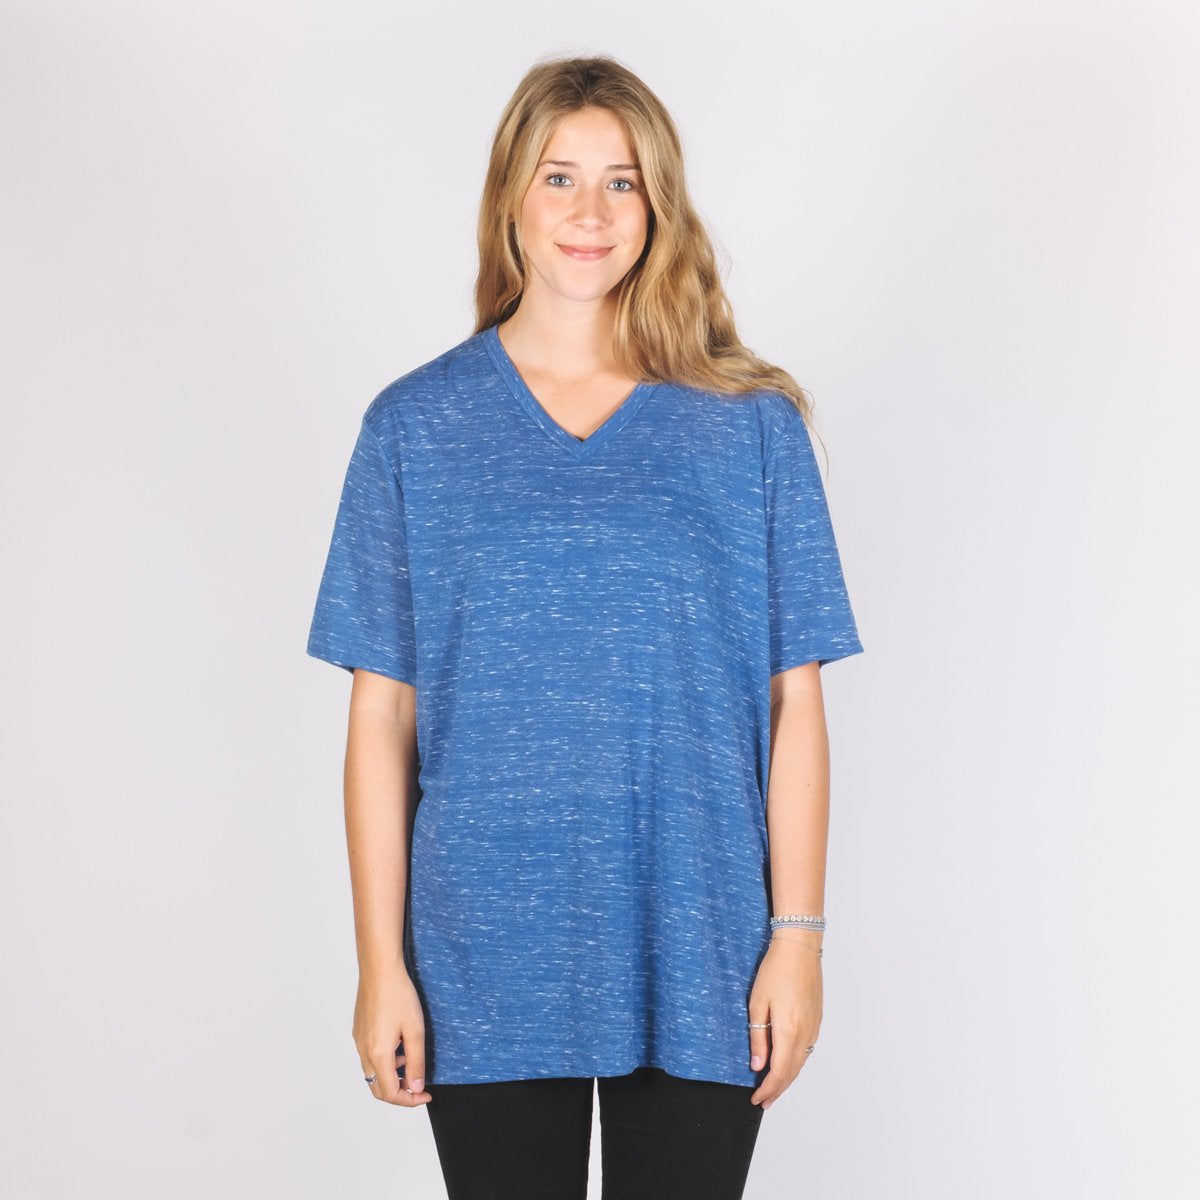 Bella + Canvas 3005 Unisex Jersey Short Sleeve V-Neck